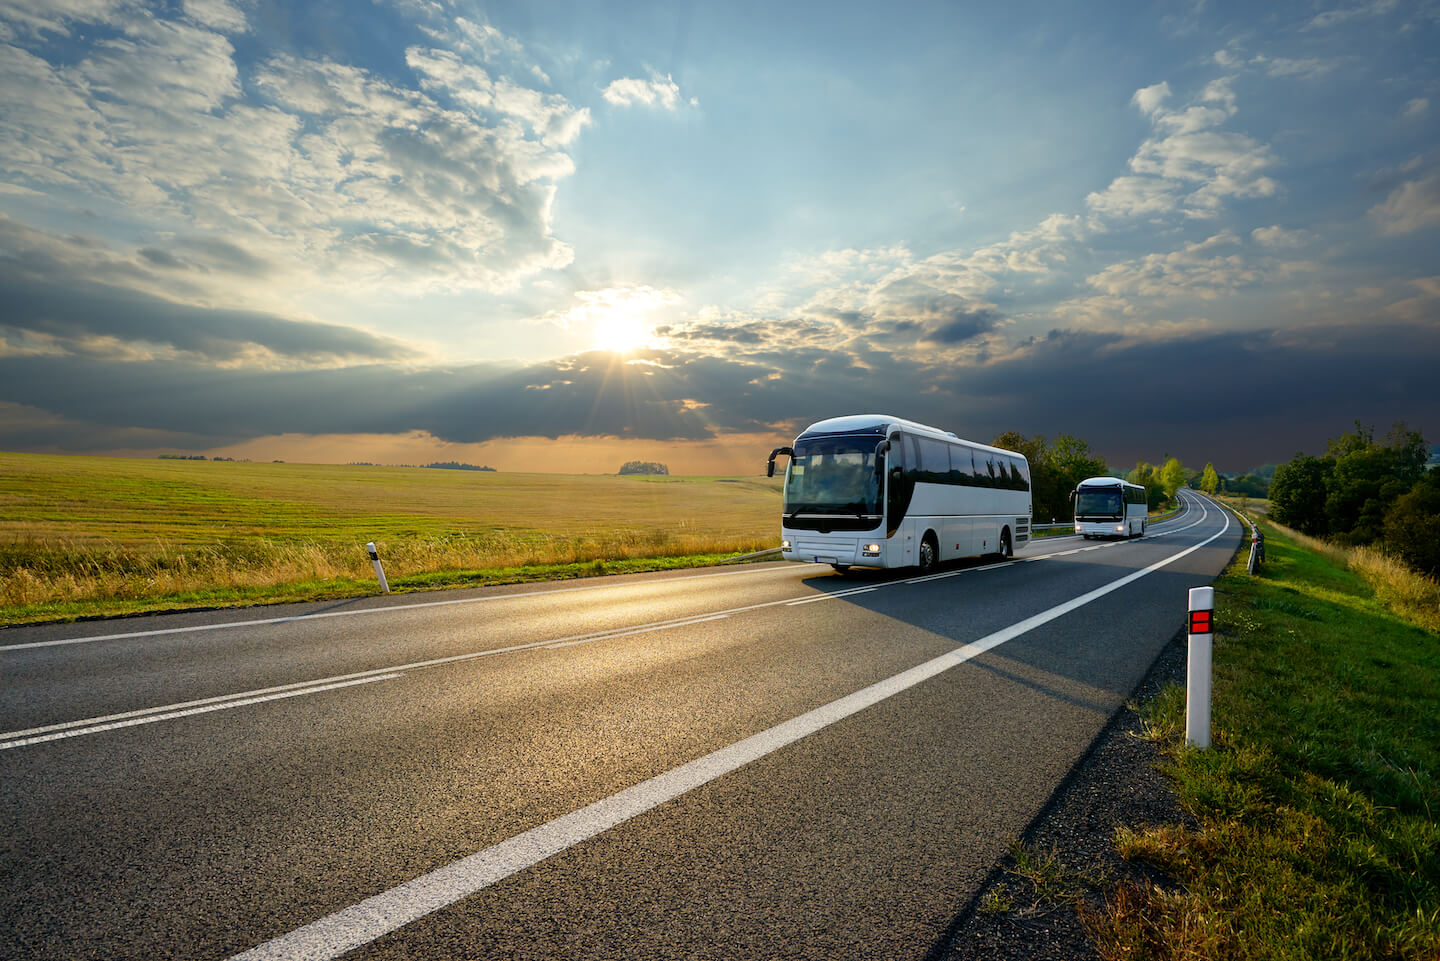 safety-in-numbers-why-charter-bus-transportation-is-so-safe-2